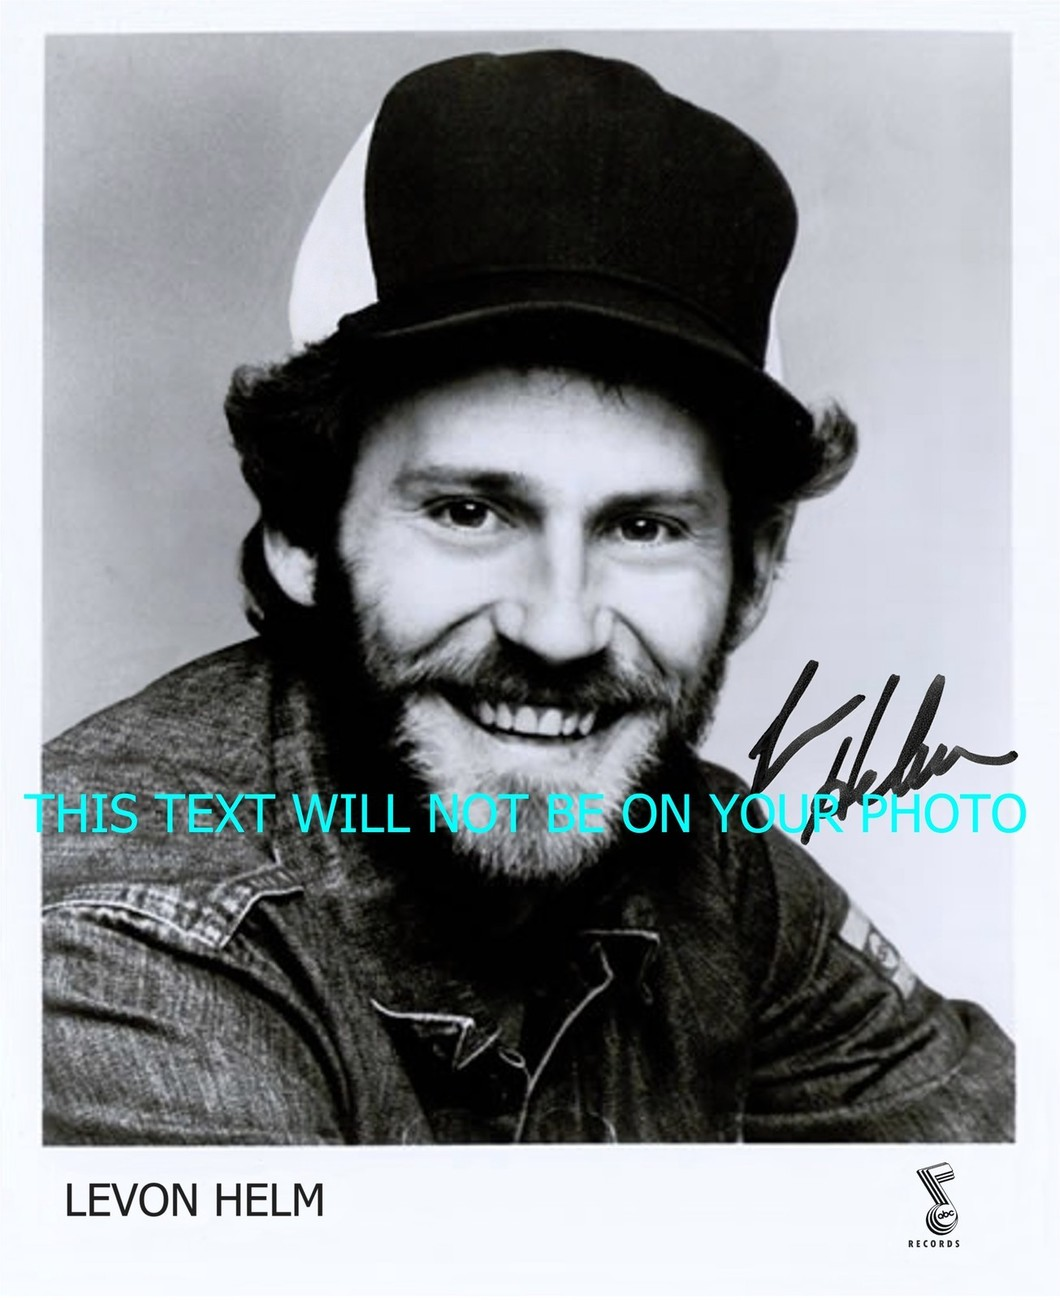 LEVON HELM THE BAND AUTOGRAPHED 8x10 RP PROMO PHOTO PUBLICITY PICTURE